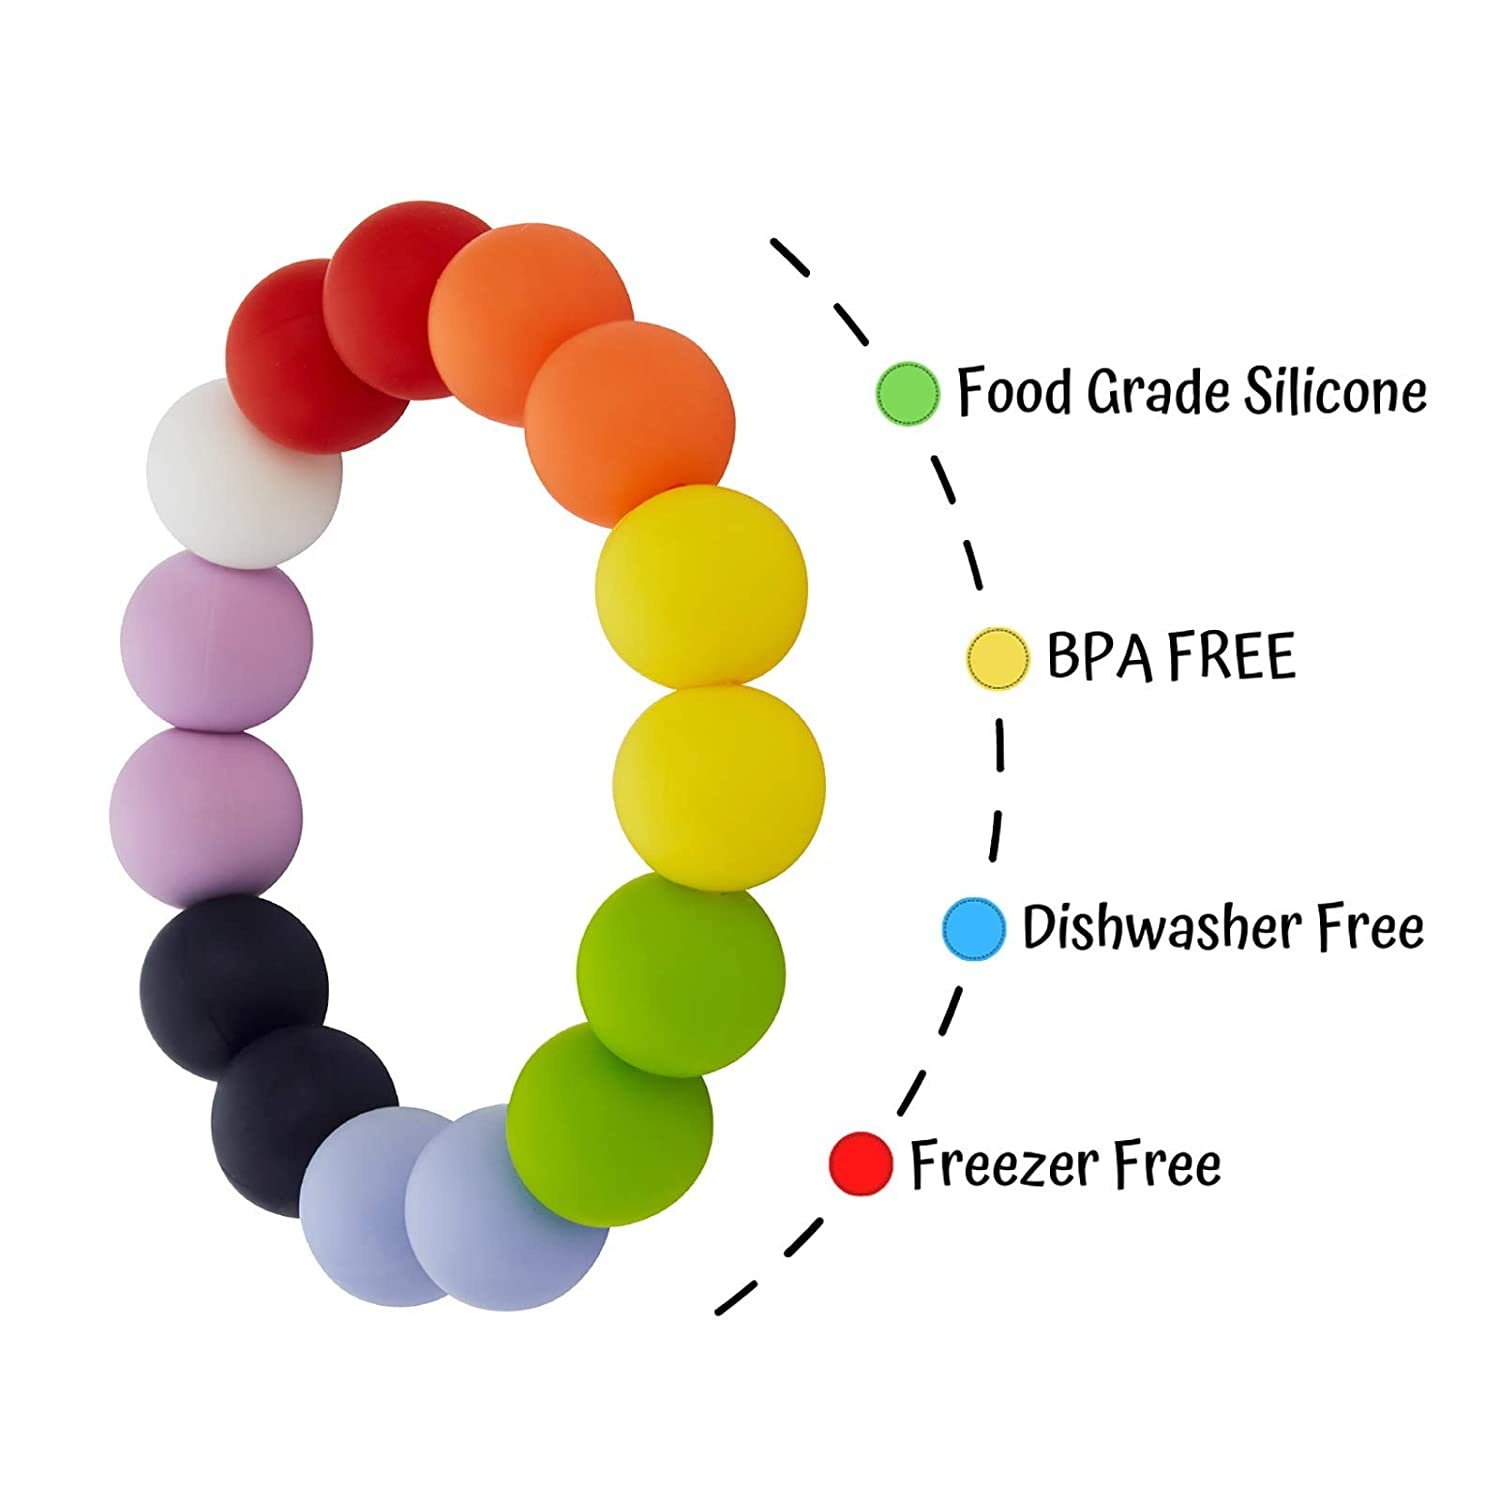 Baby Nursing or Special Needs ADHD Chewable Silicone Beads Bracelet for Autistic Chewers Nearbyme Sensory Oral Motor Aids Chewable Bracelet for Baby Kids Boys and Girls